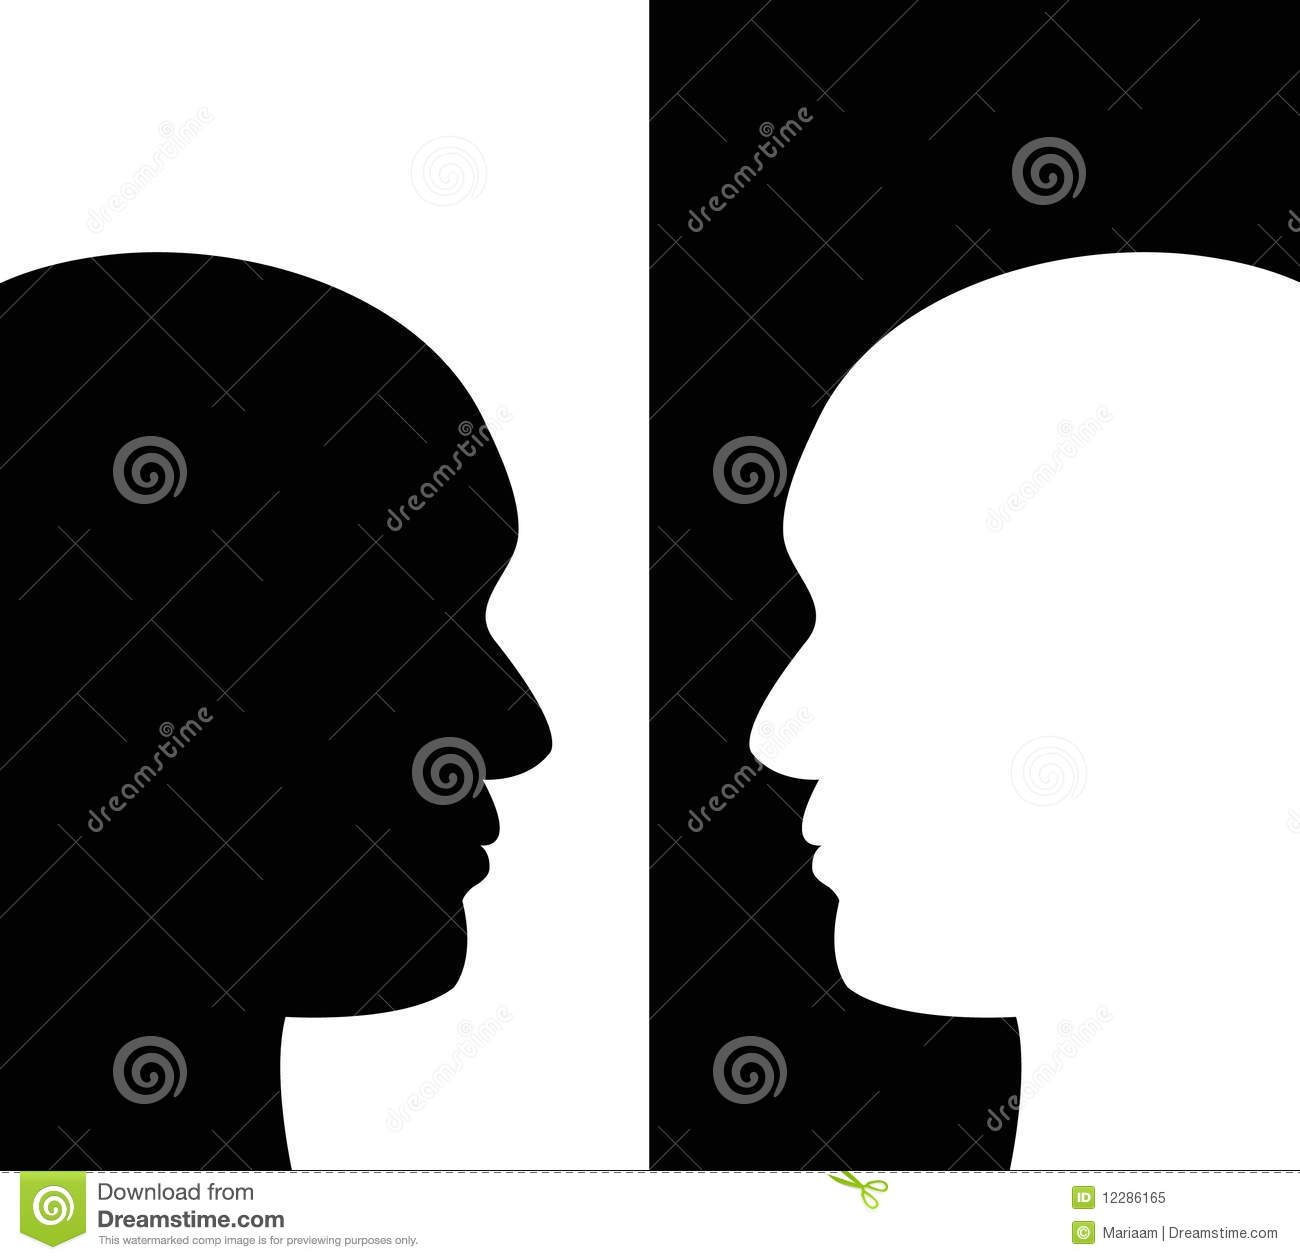 Personality disorder clipart clip art black and white library Borderline Personality Disorder Royalty Free Stock Photo - Image ... clip art black and white library